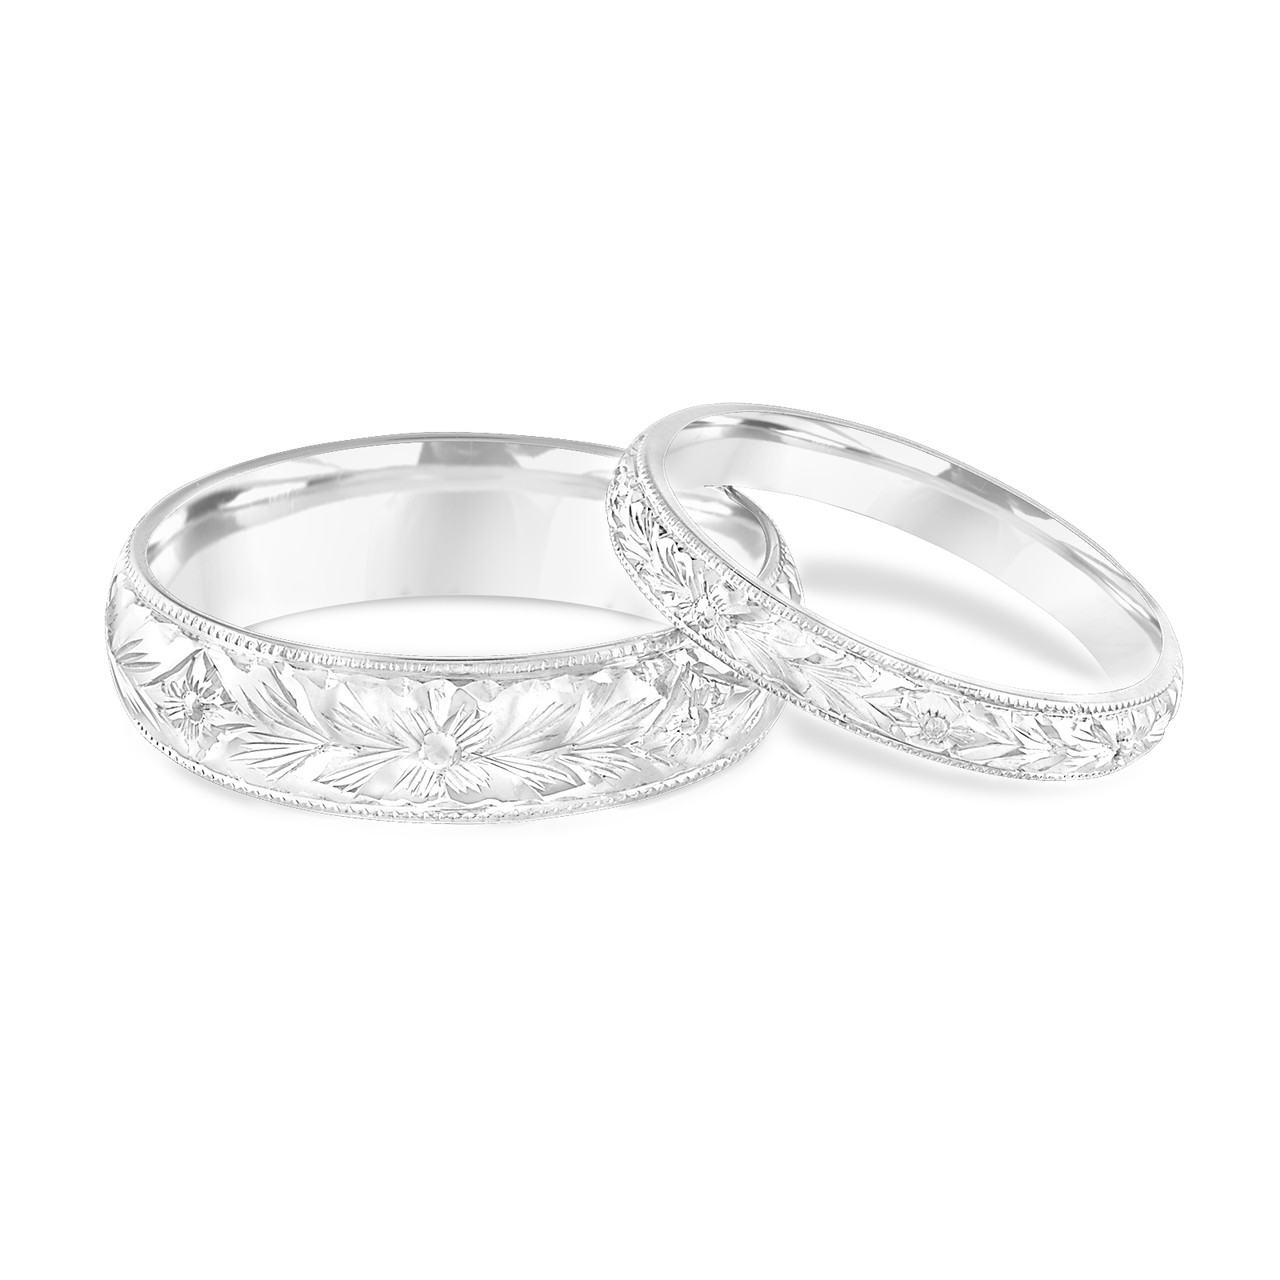 Platinum Matching Wedding Rings His And Hers Bands Hand Engraved Set